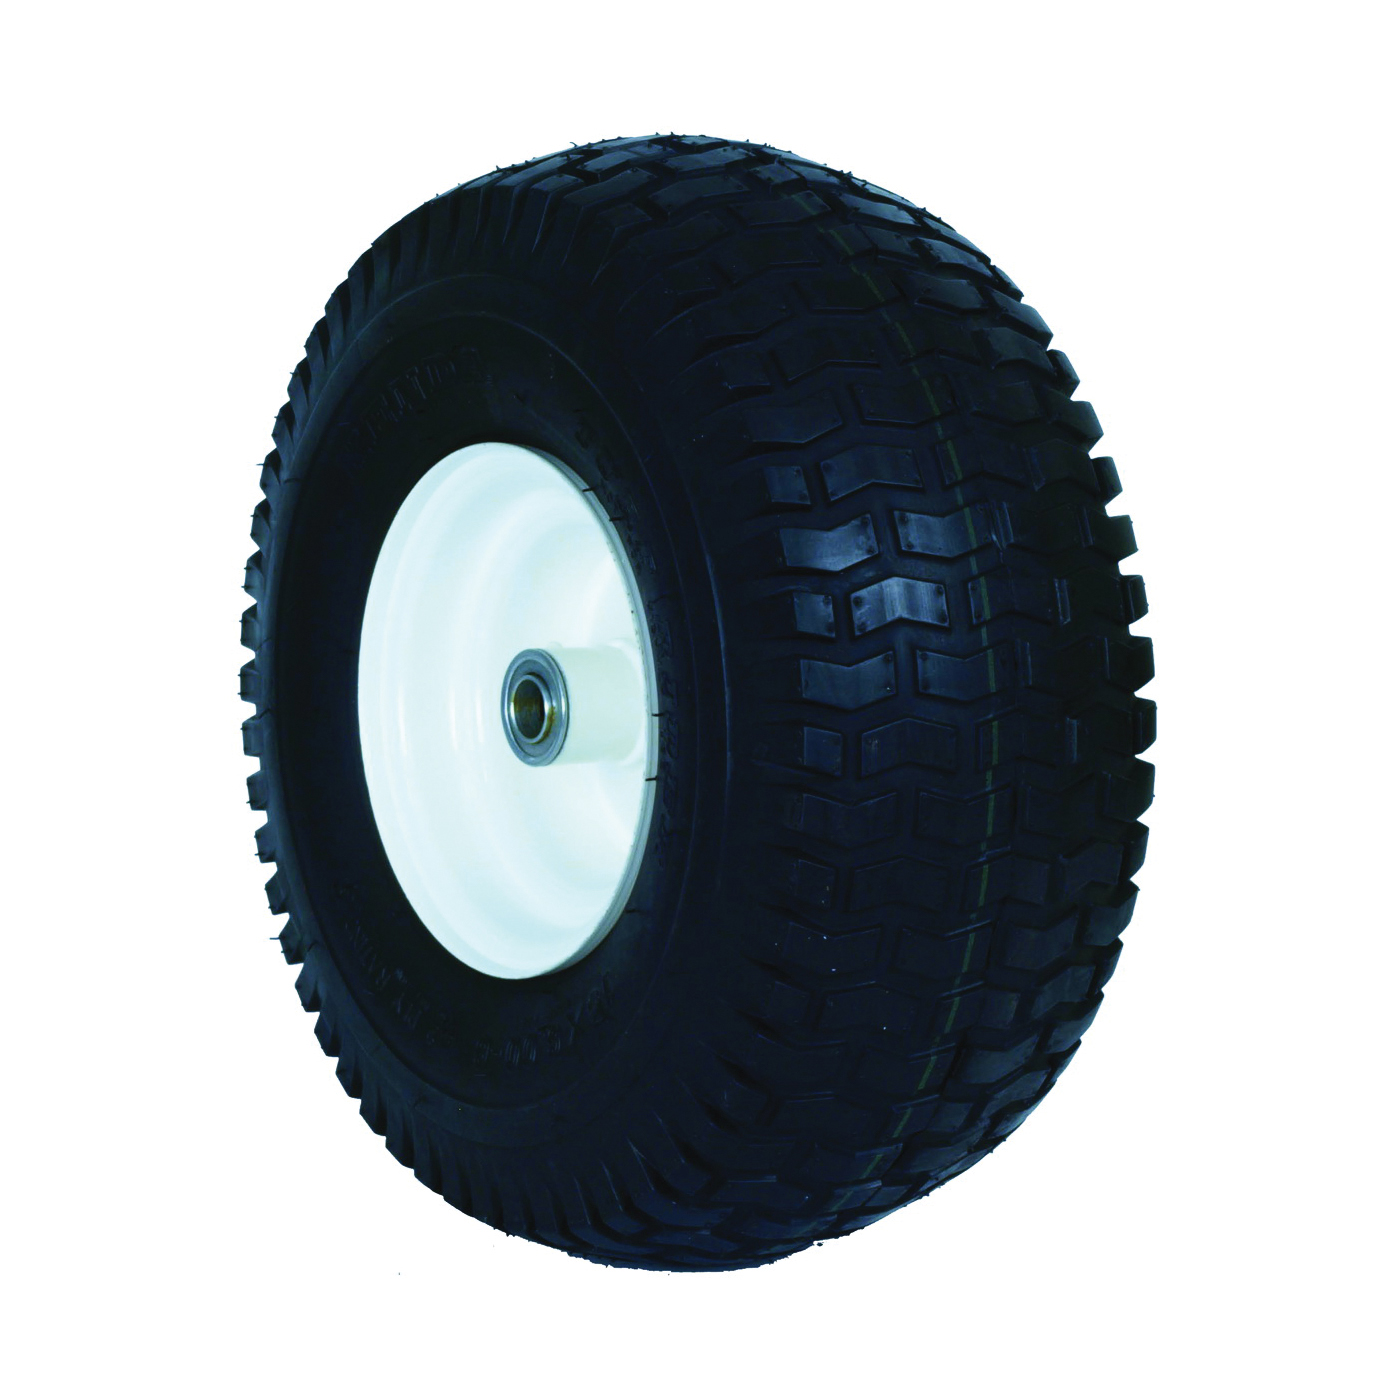 Picture of MARTIN WHEEL 606DC-TR341I Garden Tractor Wheel, Pneumatic, Smooth, White